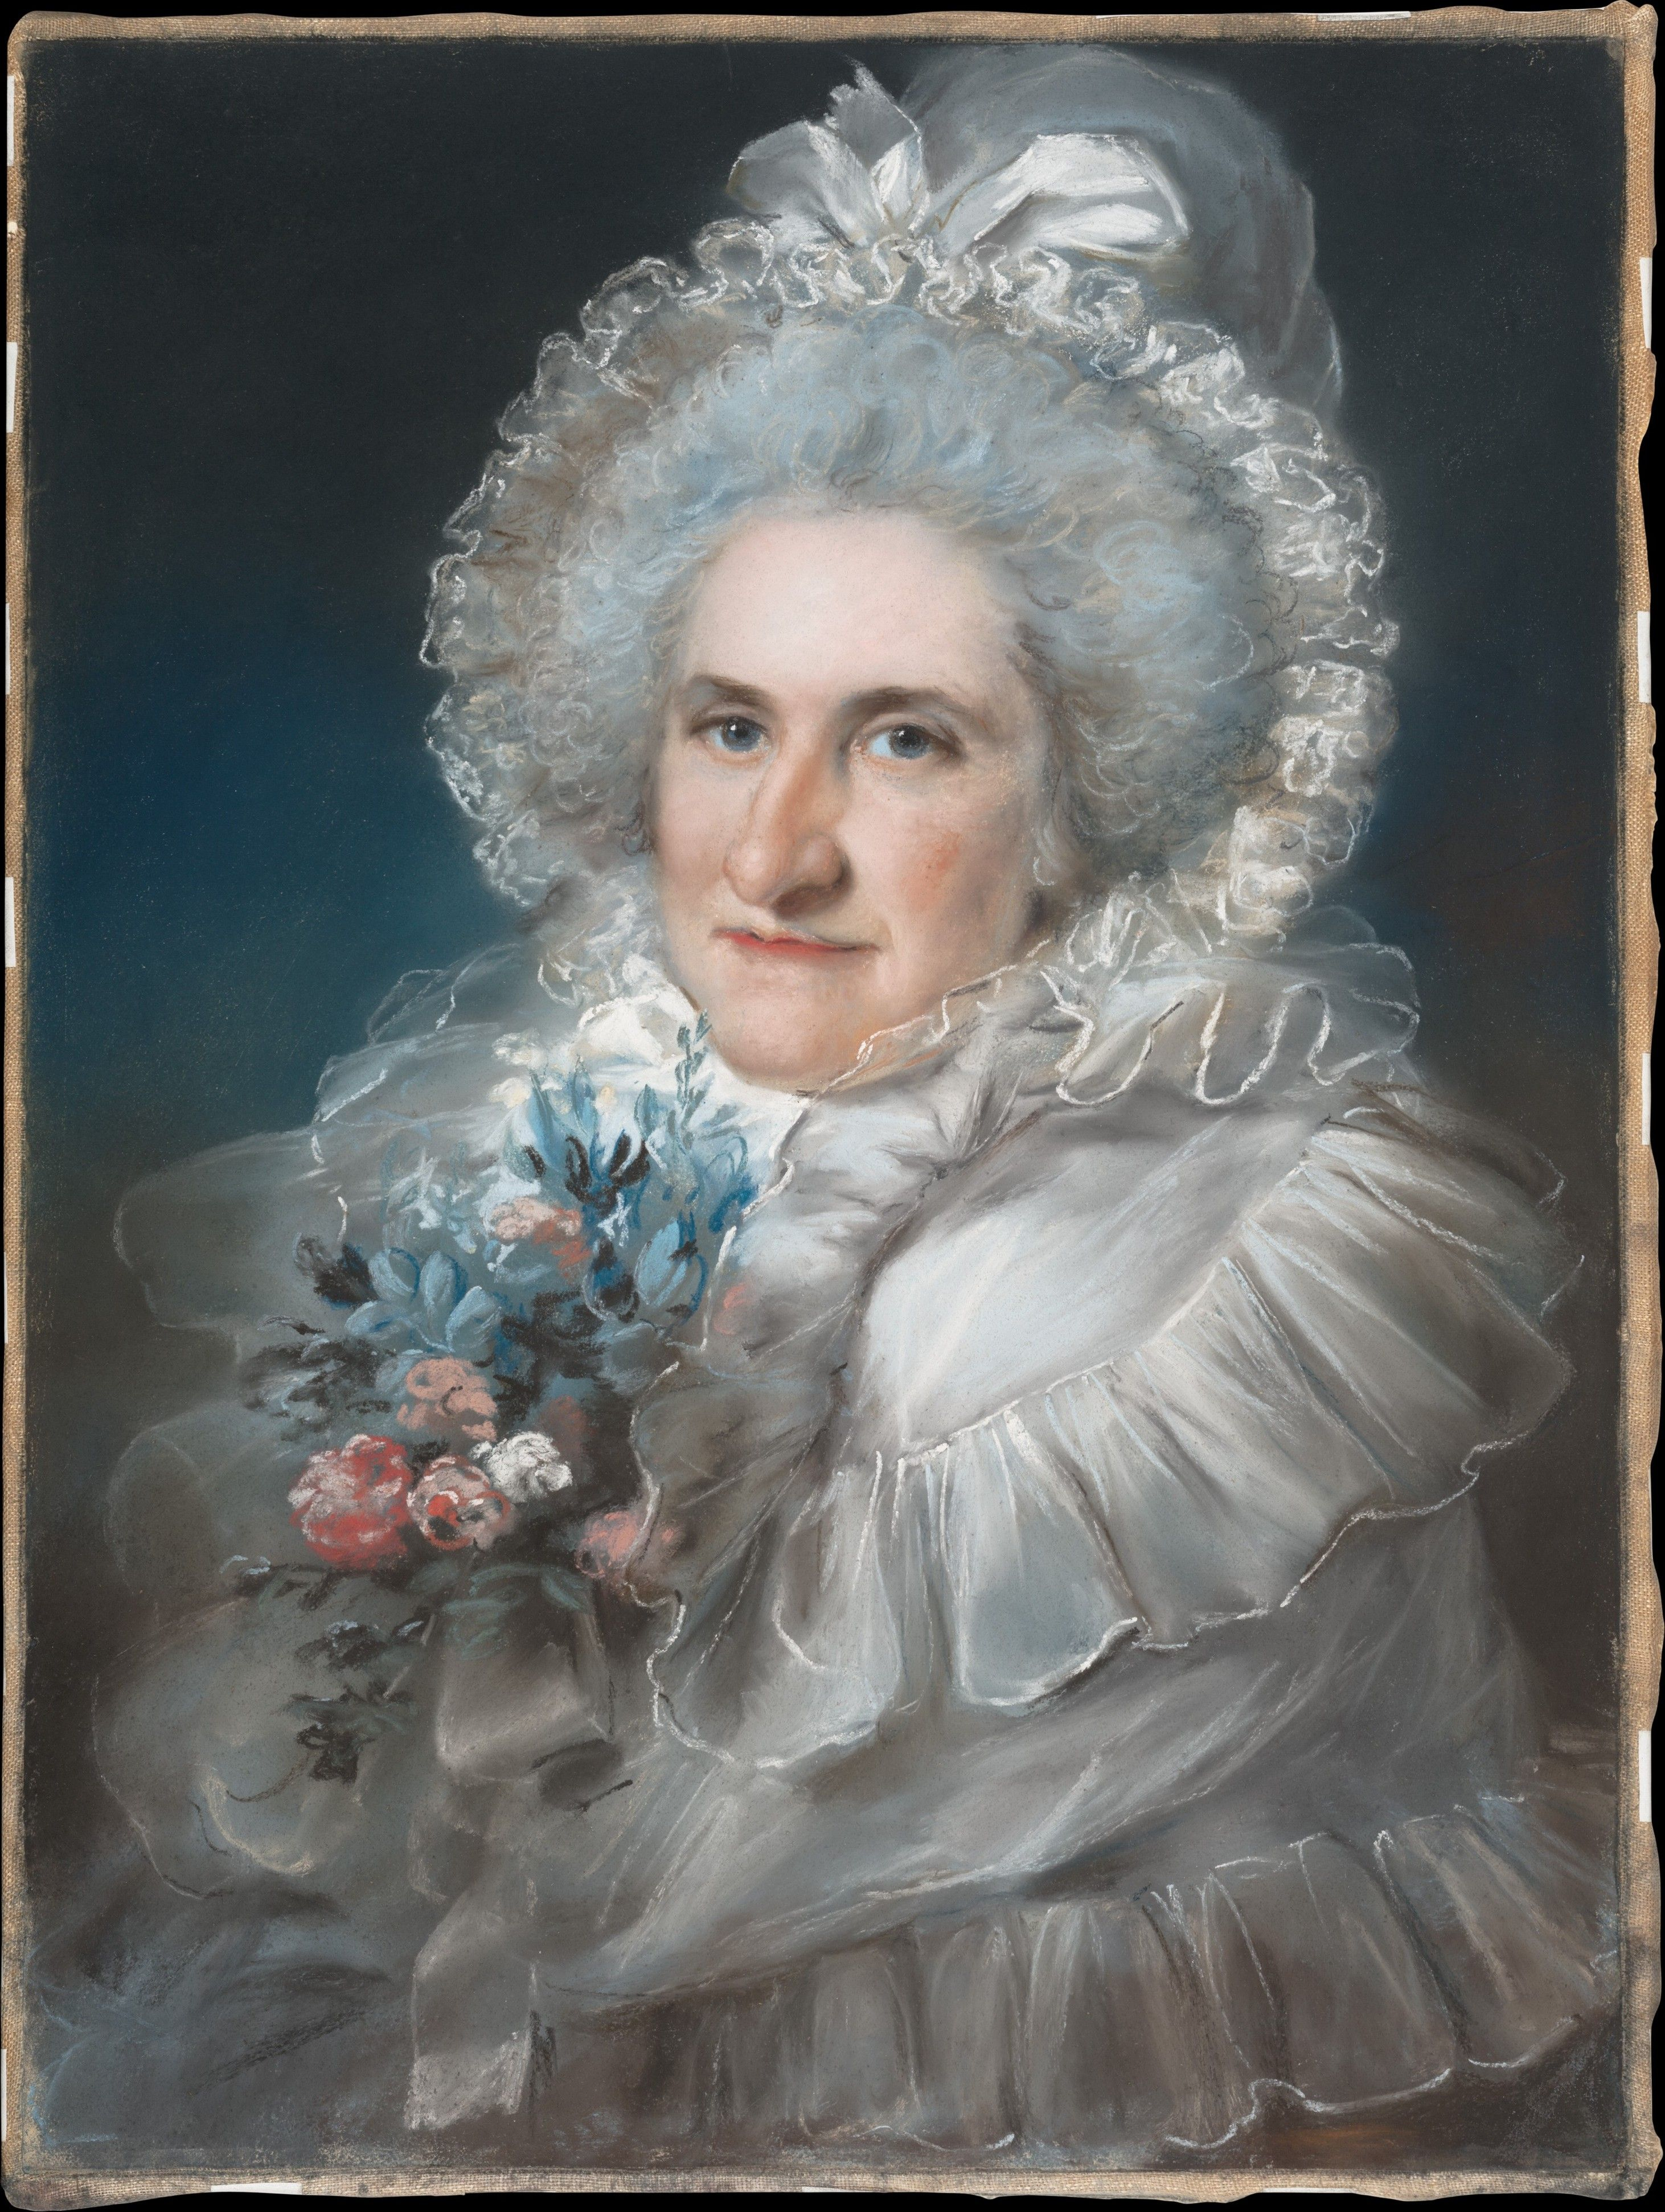 Russell was England's leading pastellist in the later eighteenth century. He studied under Francois Cotes and from 1769 to 1806 exhibited annually at the Royal Academy, of which he was a member. This portrait and a companion piece showing the sitter's husband were executed to celebrate the couple's fortieth anniversary